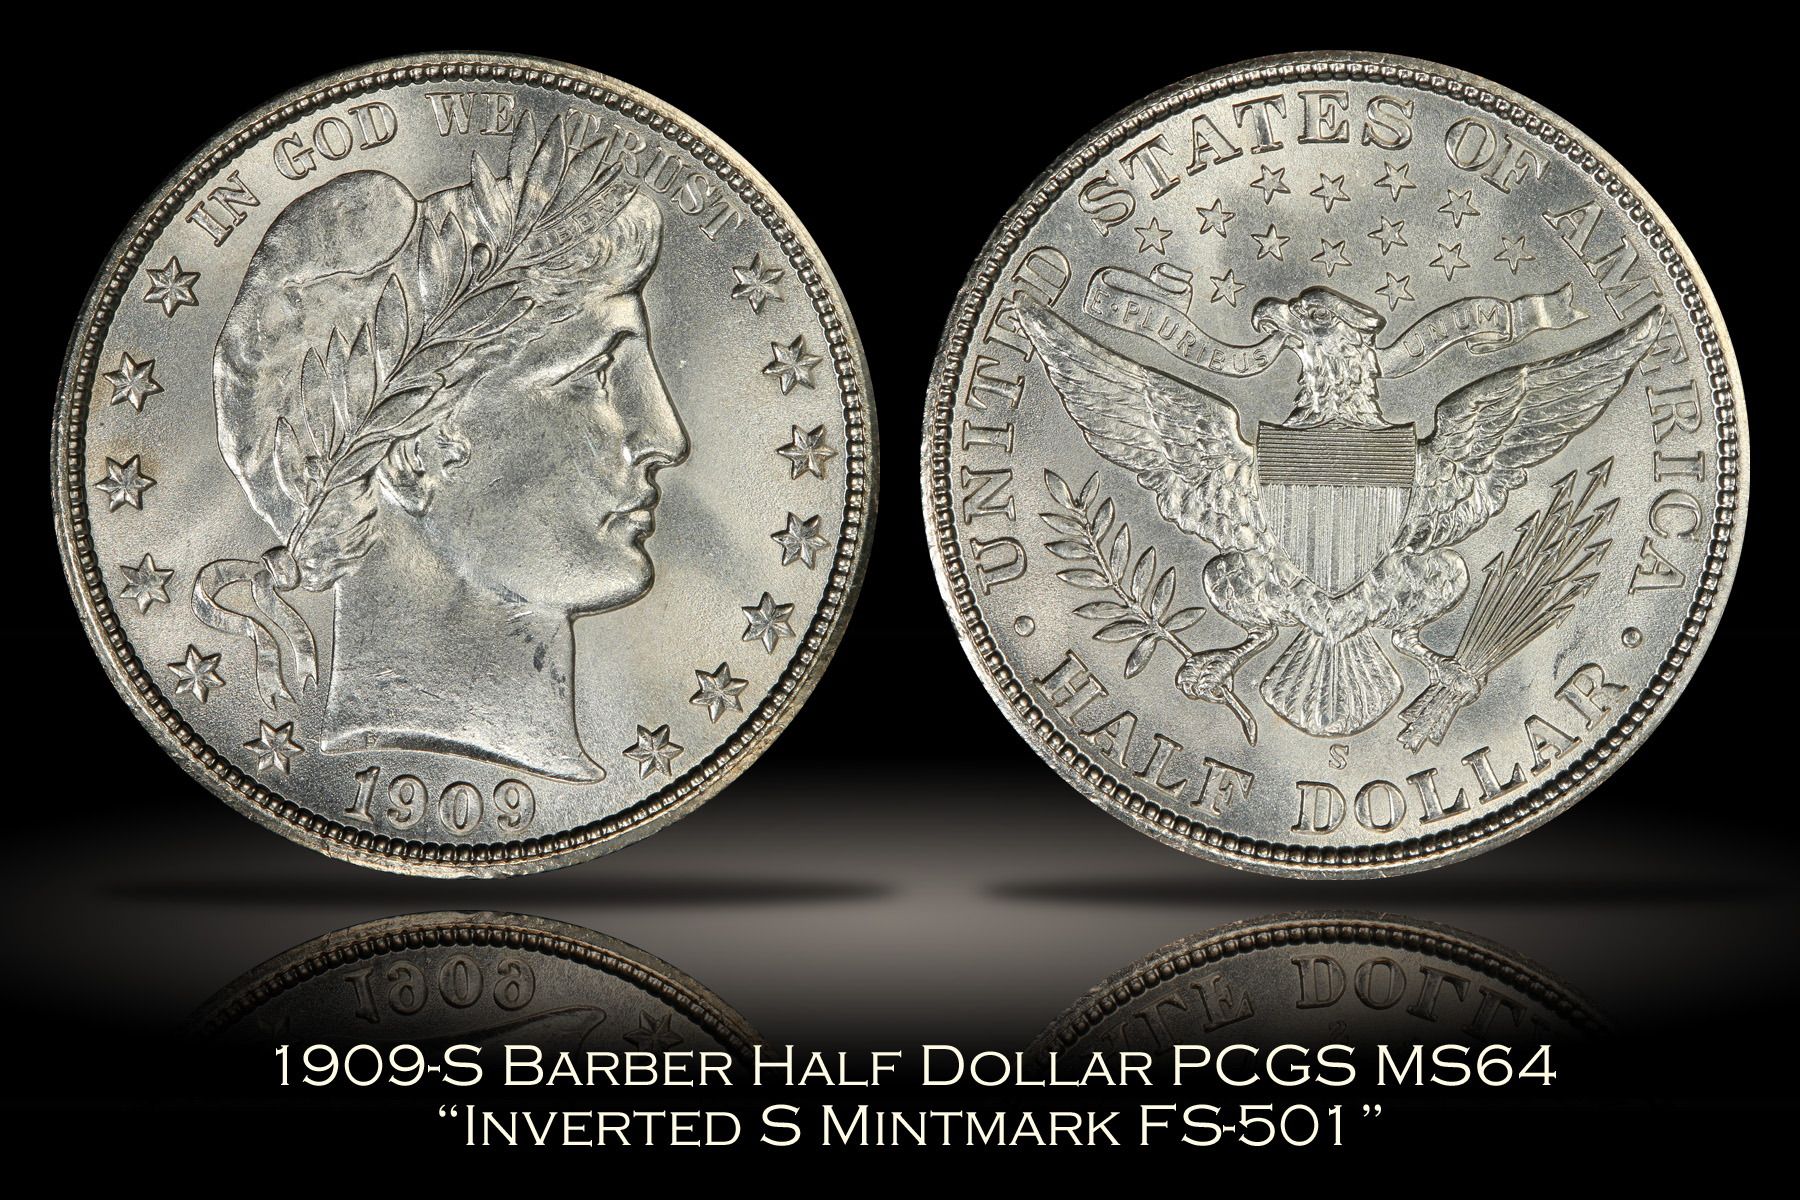 1909-S Barber Half FS-501 Inverted Mintmark PCGS MS64